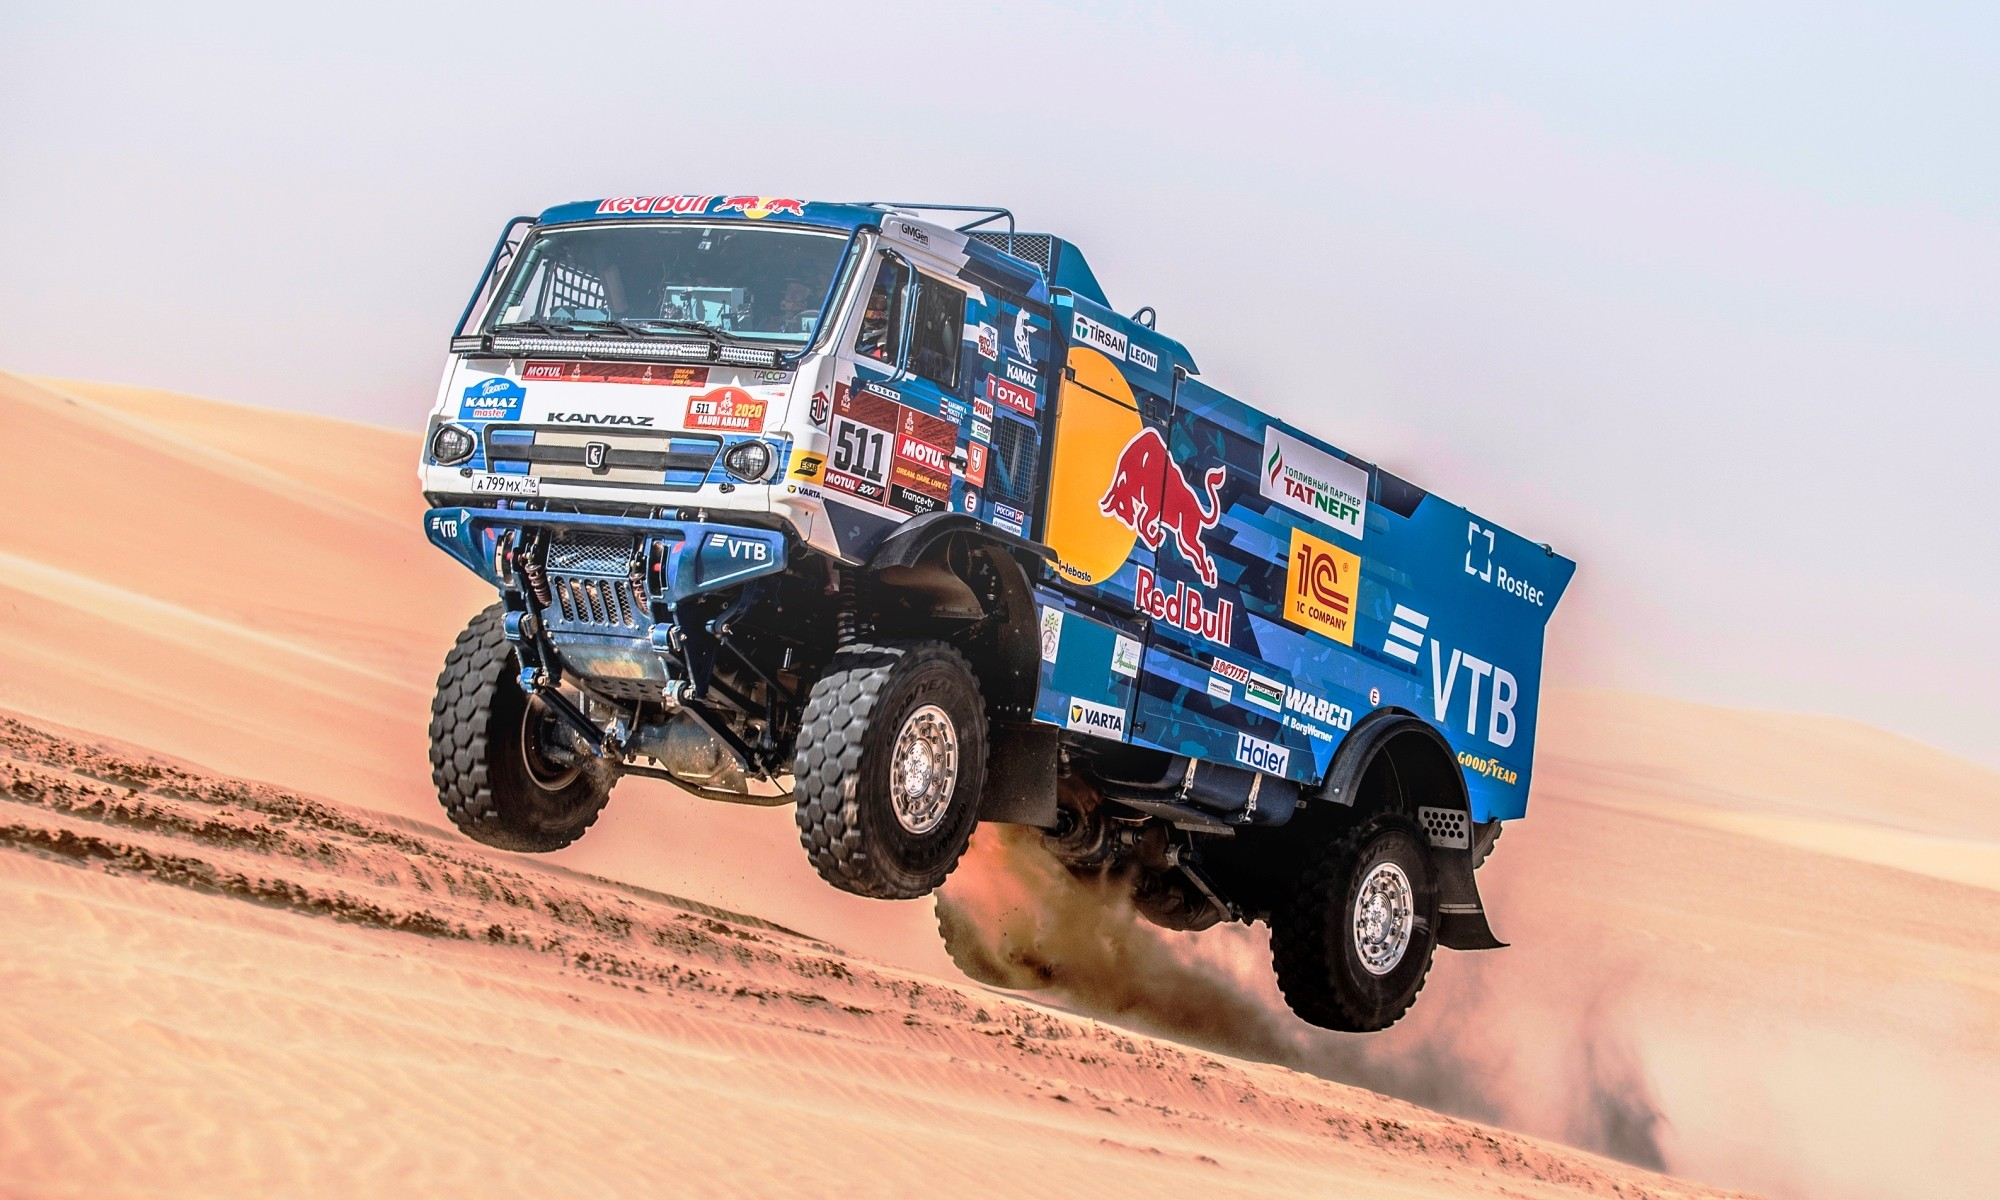 2020 Dakar Highlight: Andrey Karginov catches some air during stage 10